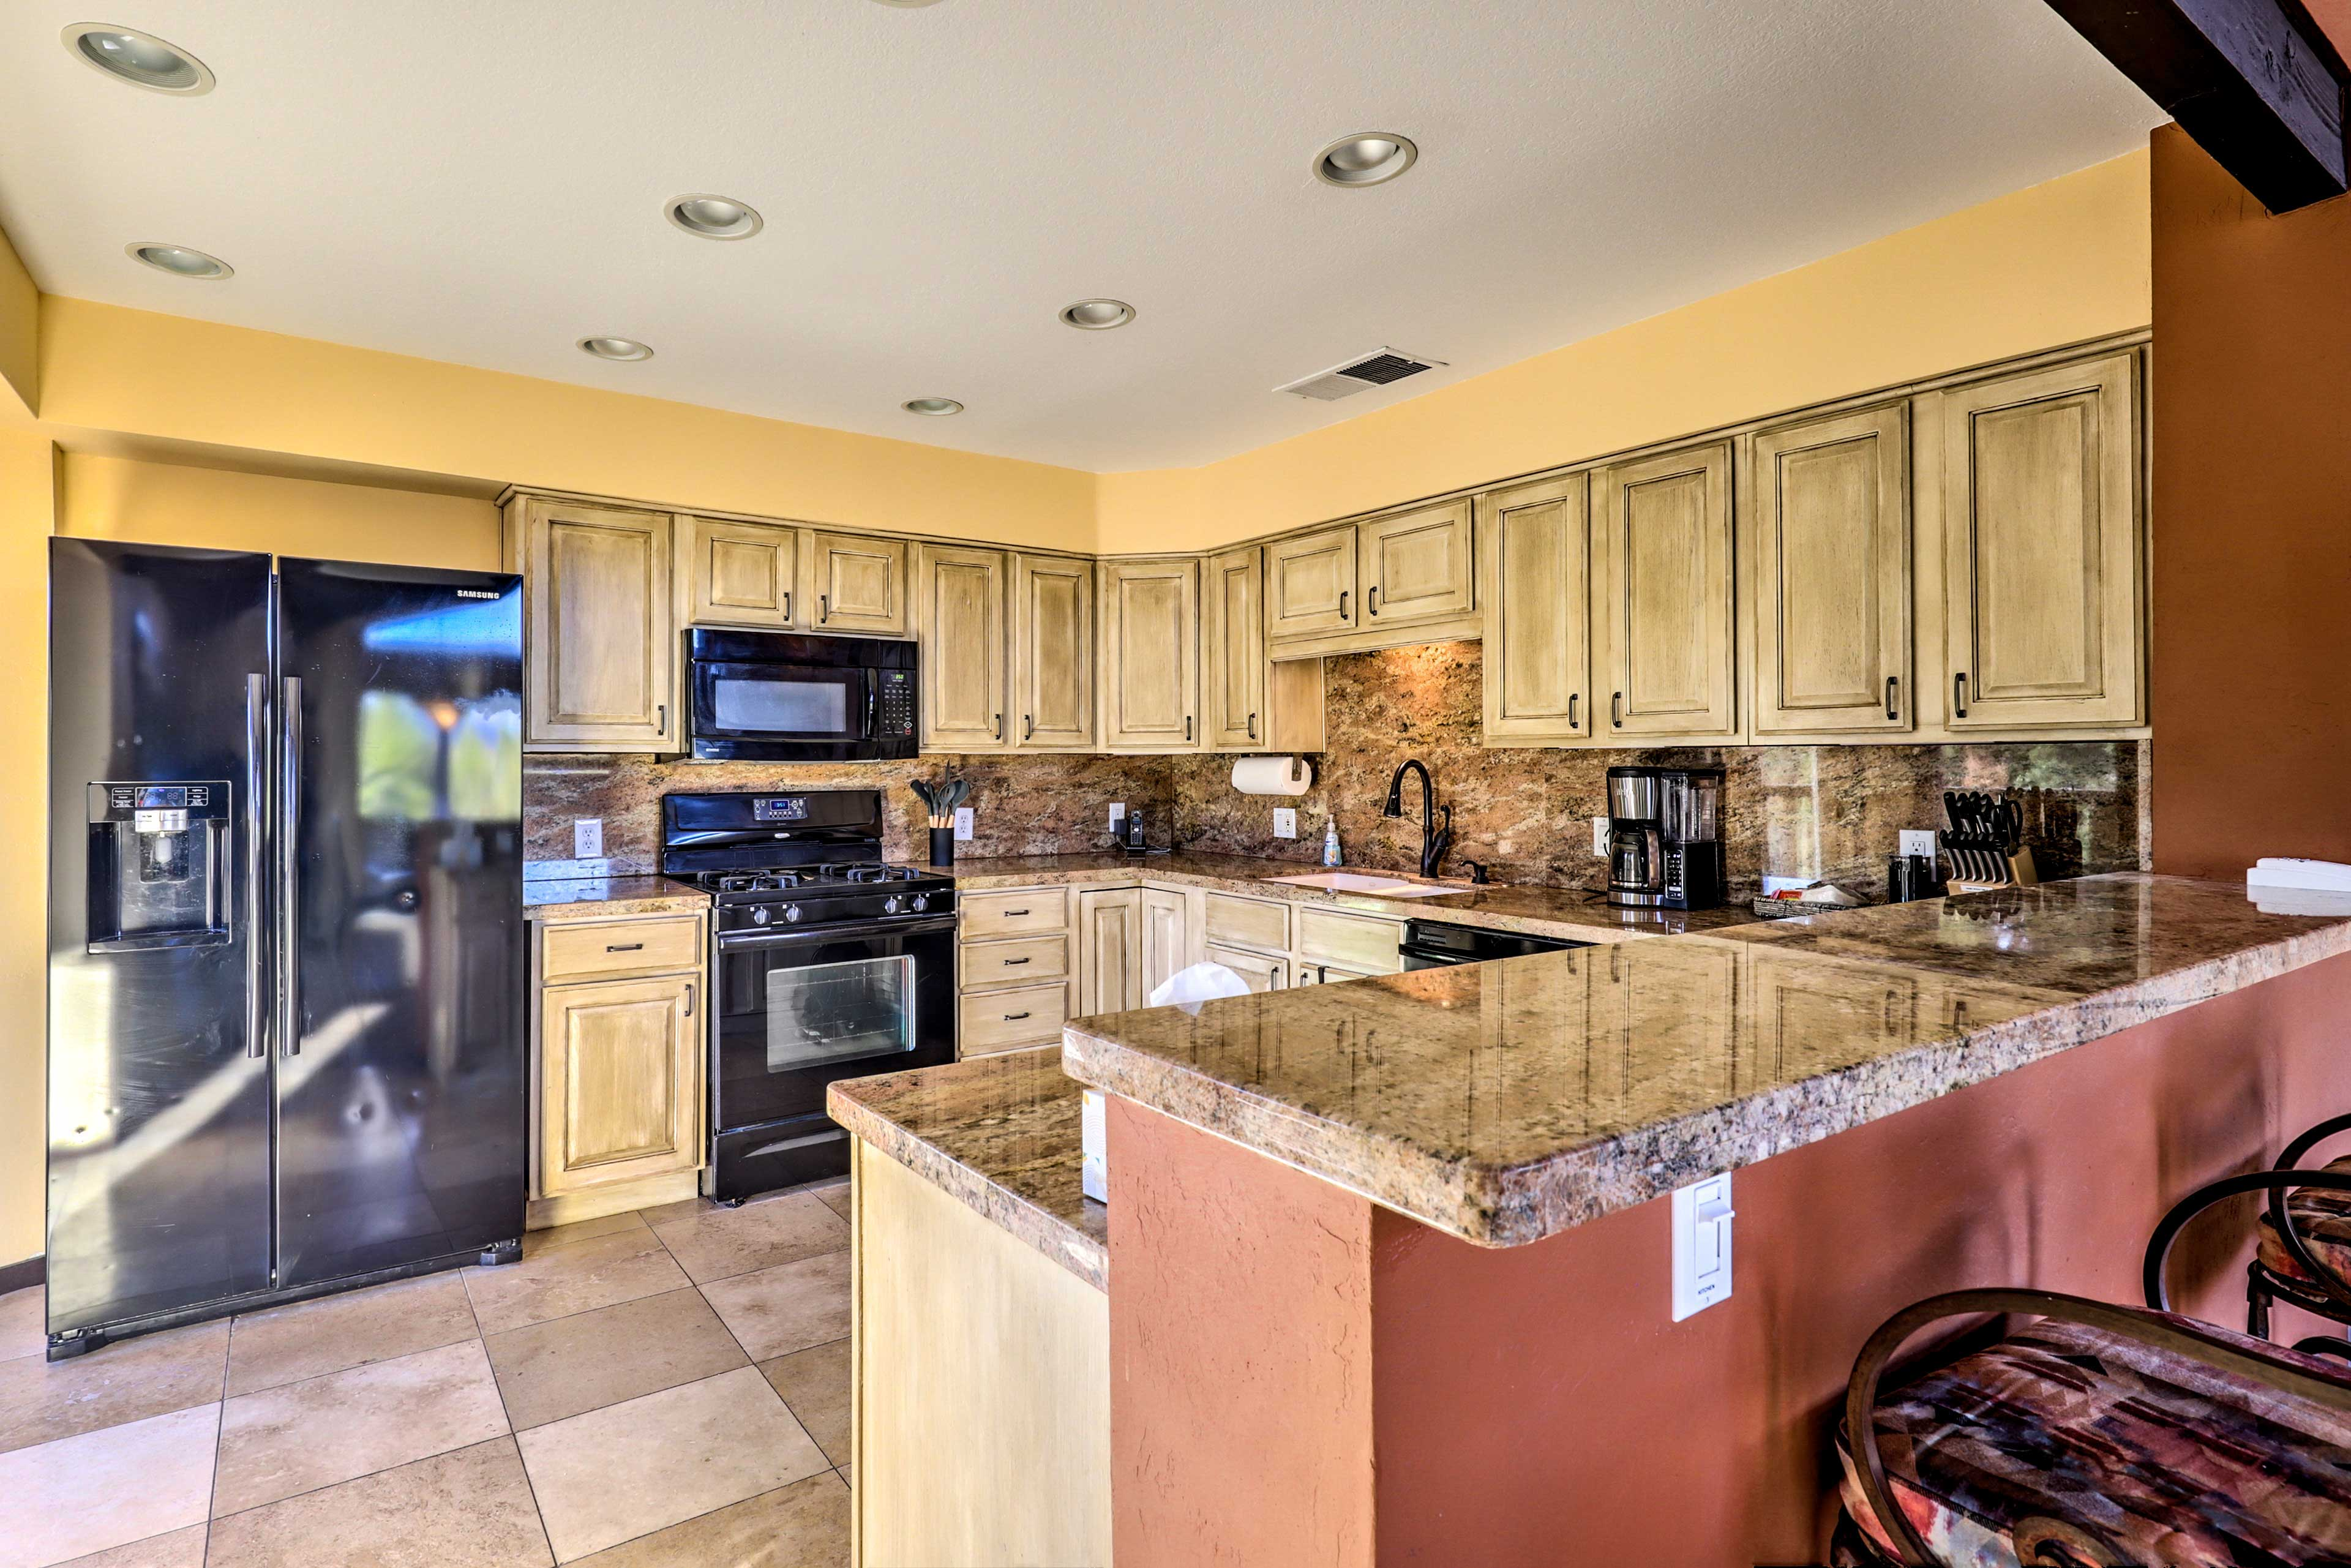 Whip up some fine cuisine of your own in this open kitchen.